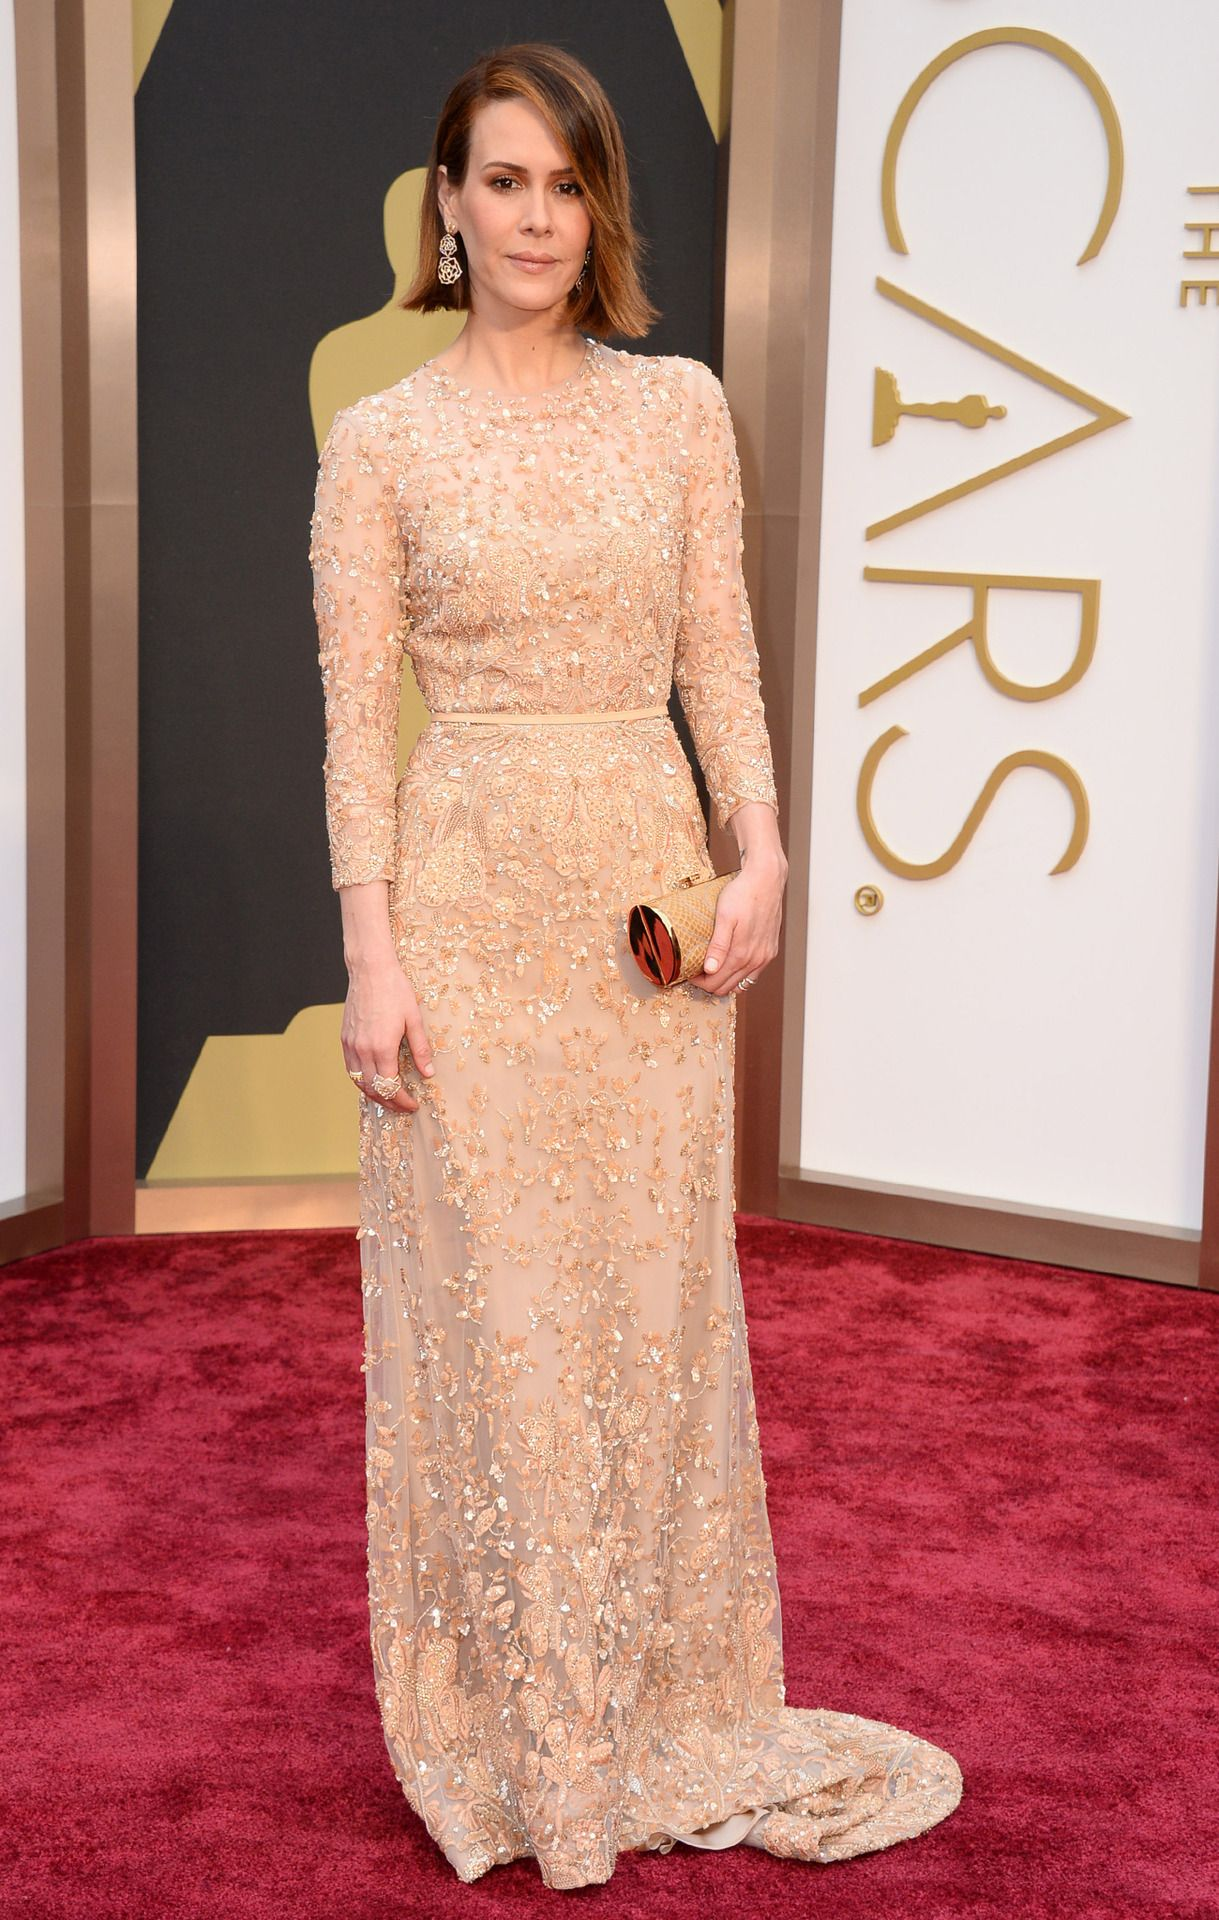 Sarah Paulson in Elie Saab - 2014 Oscars, March 2nd